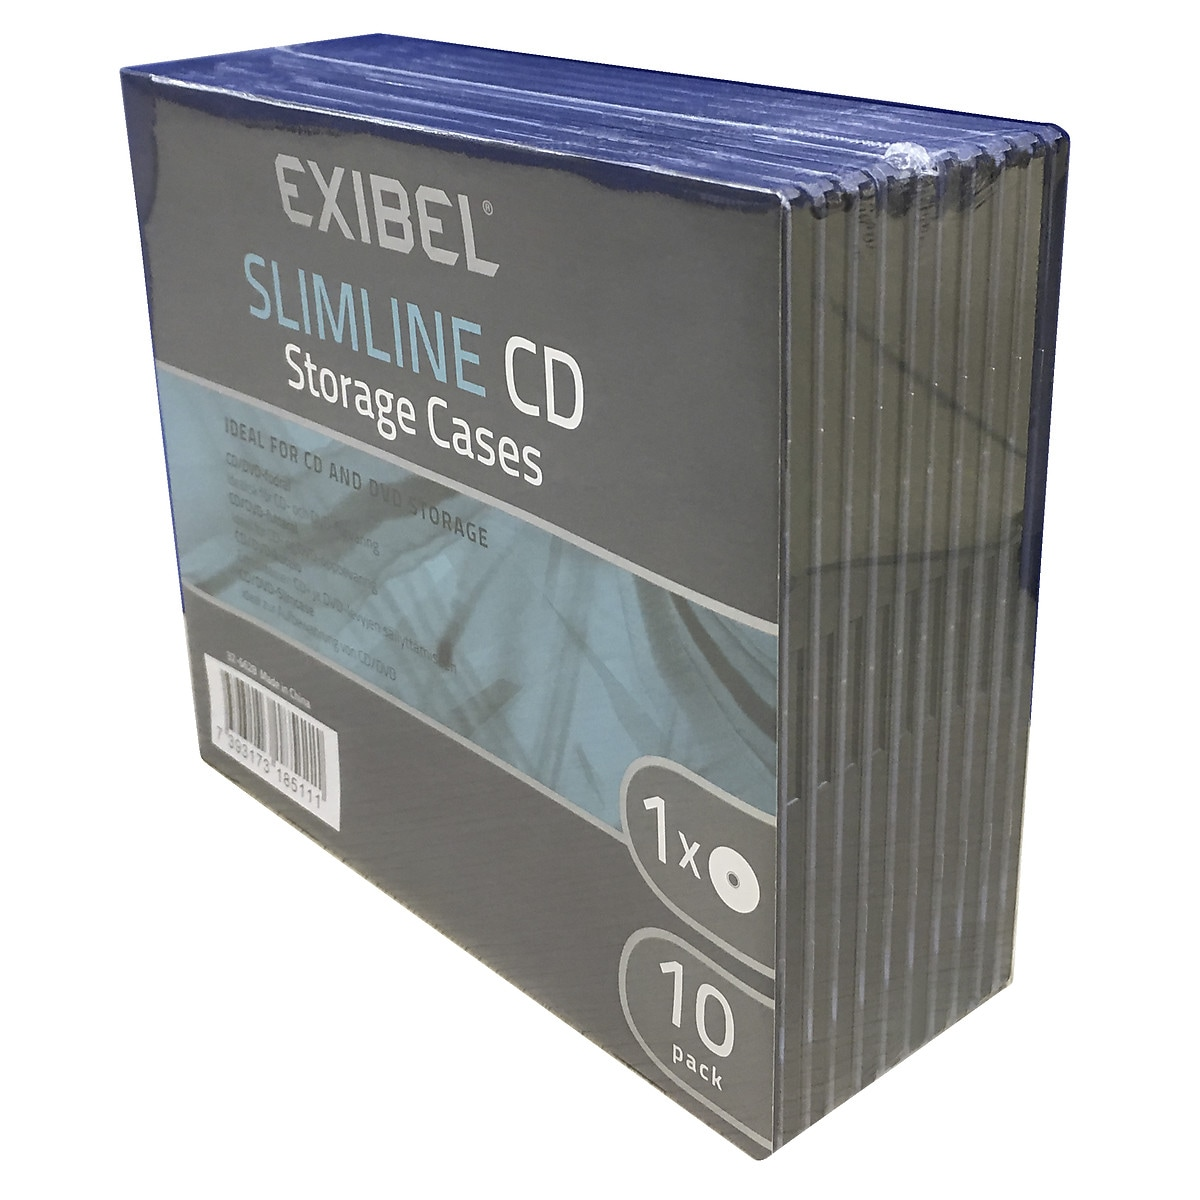 CD-Hülle Exibel Slim